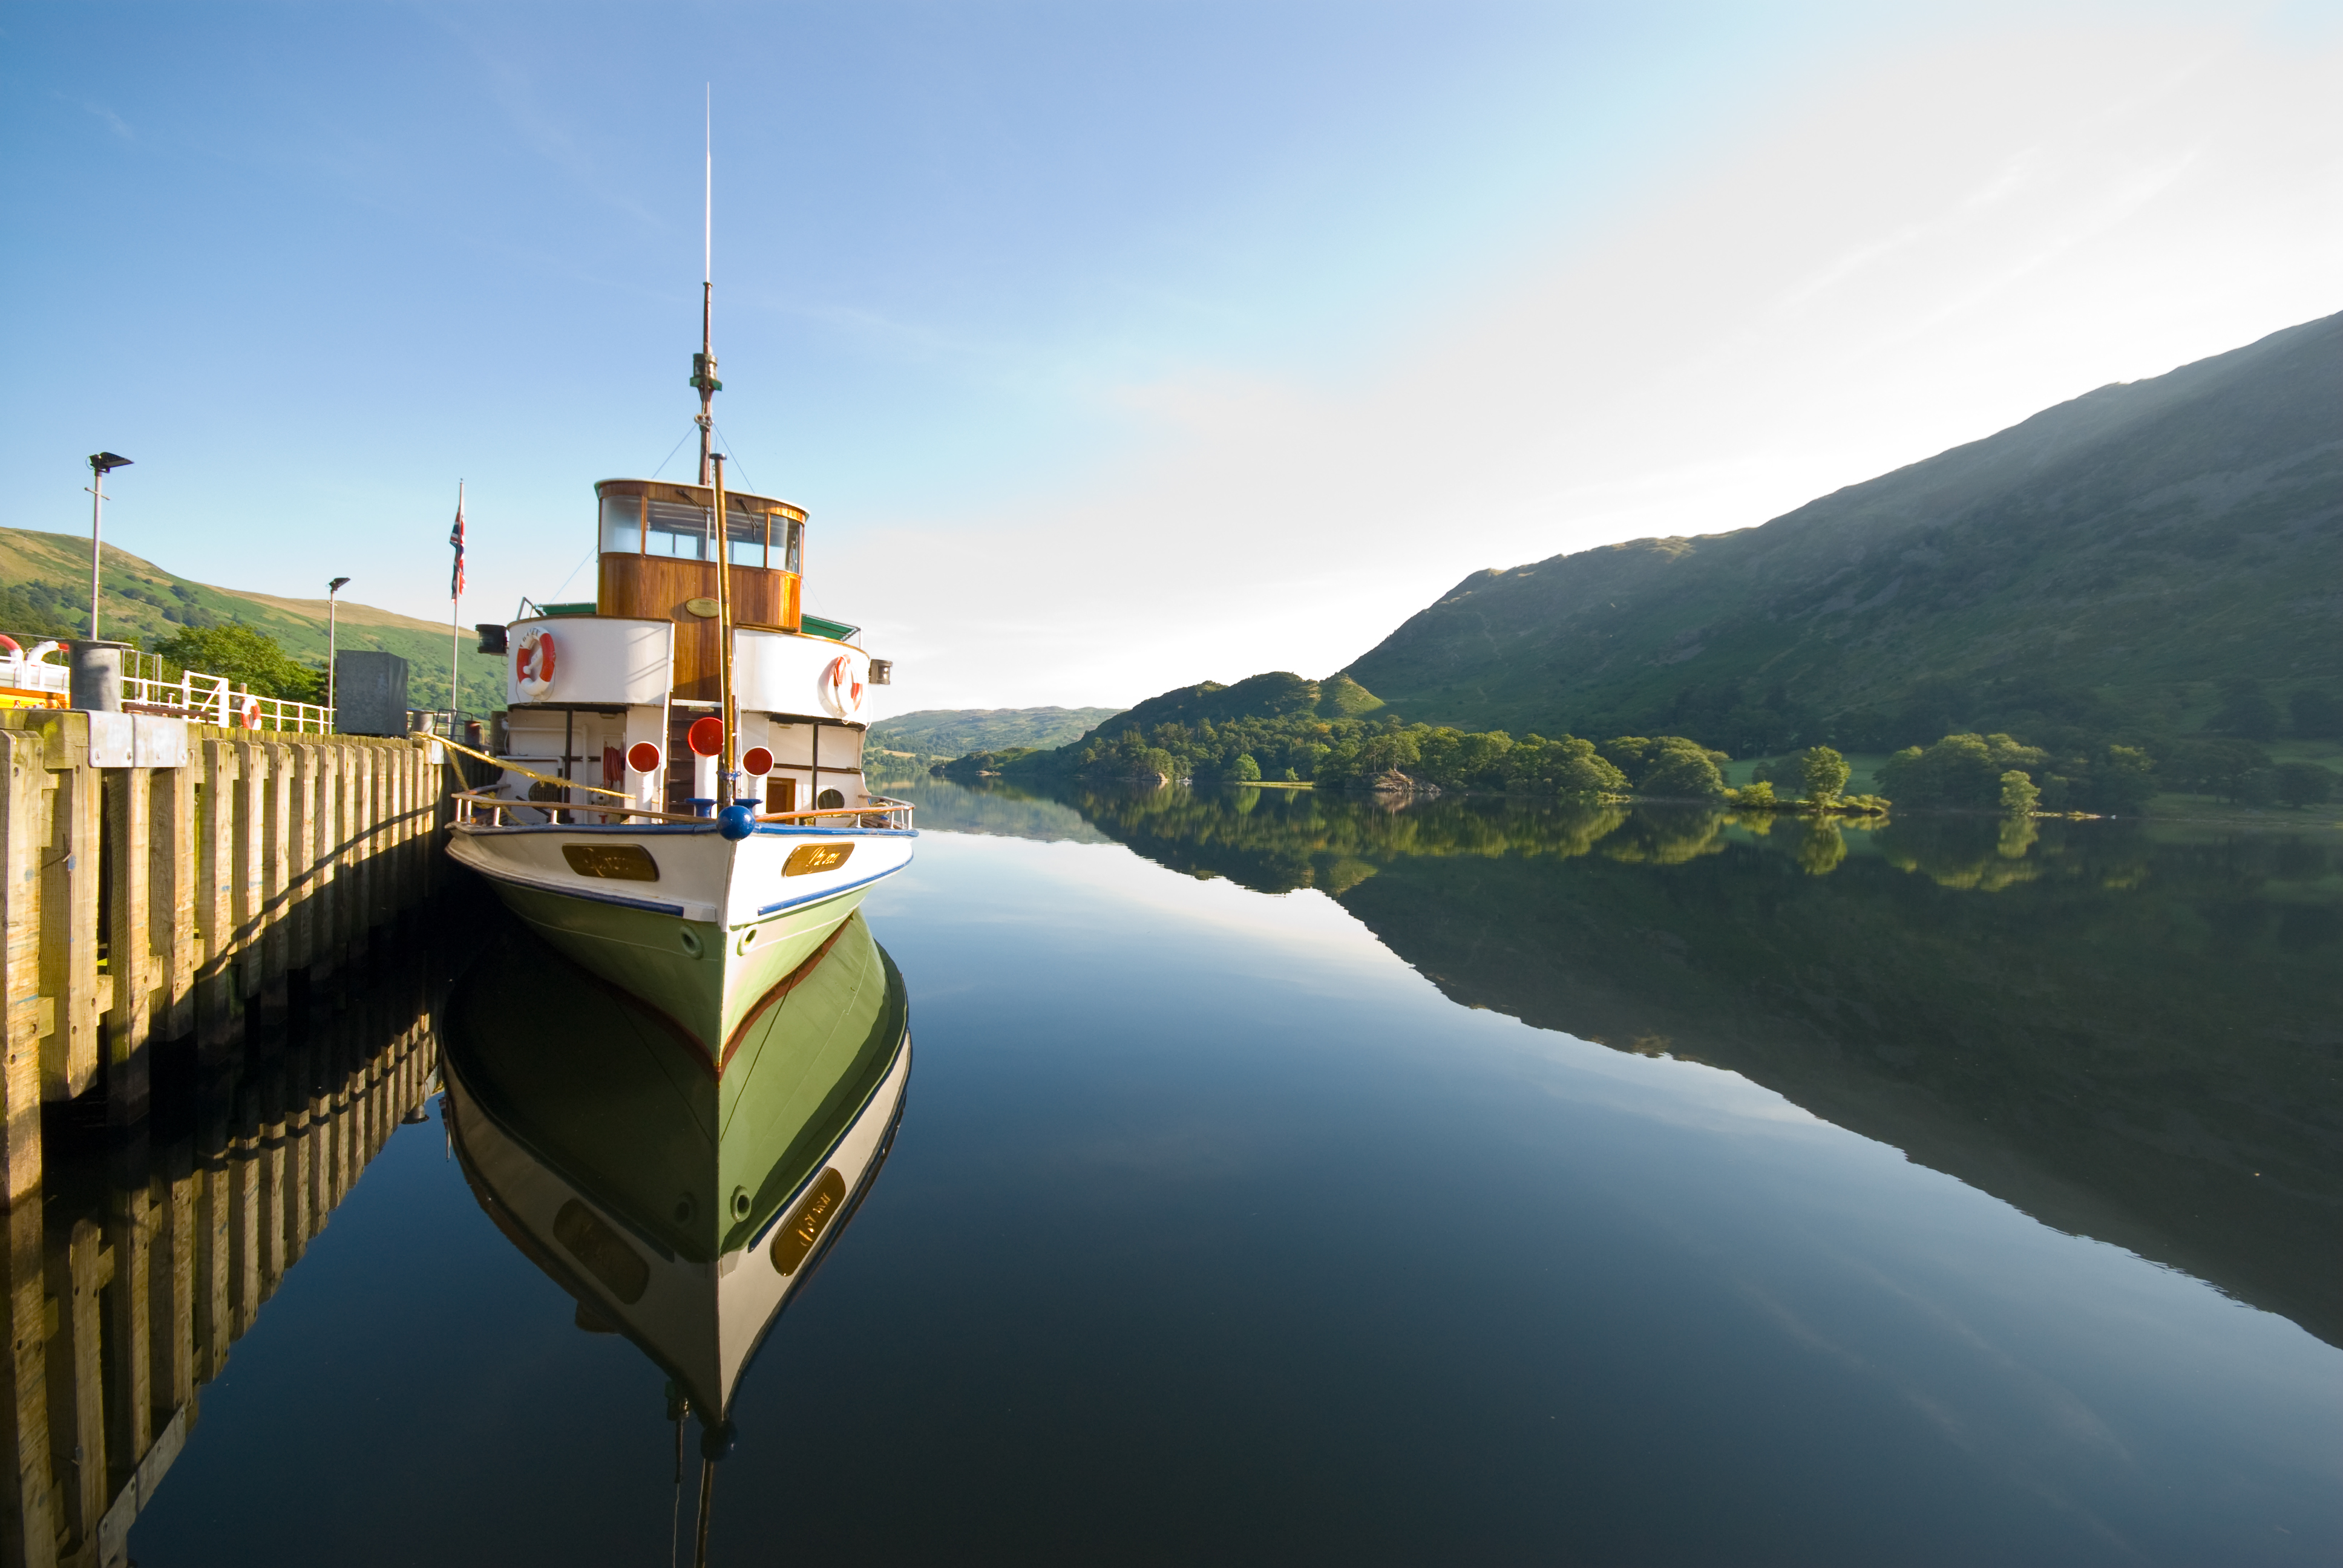 A steamer awaits passengers by the pier at Glenridding, perfectly reflected in the very still waters of tranquil Ullswater. (Photo courtesy of www.cumbriaphoto.co.uk.)